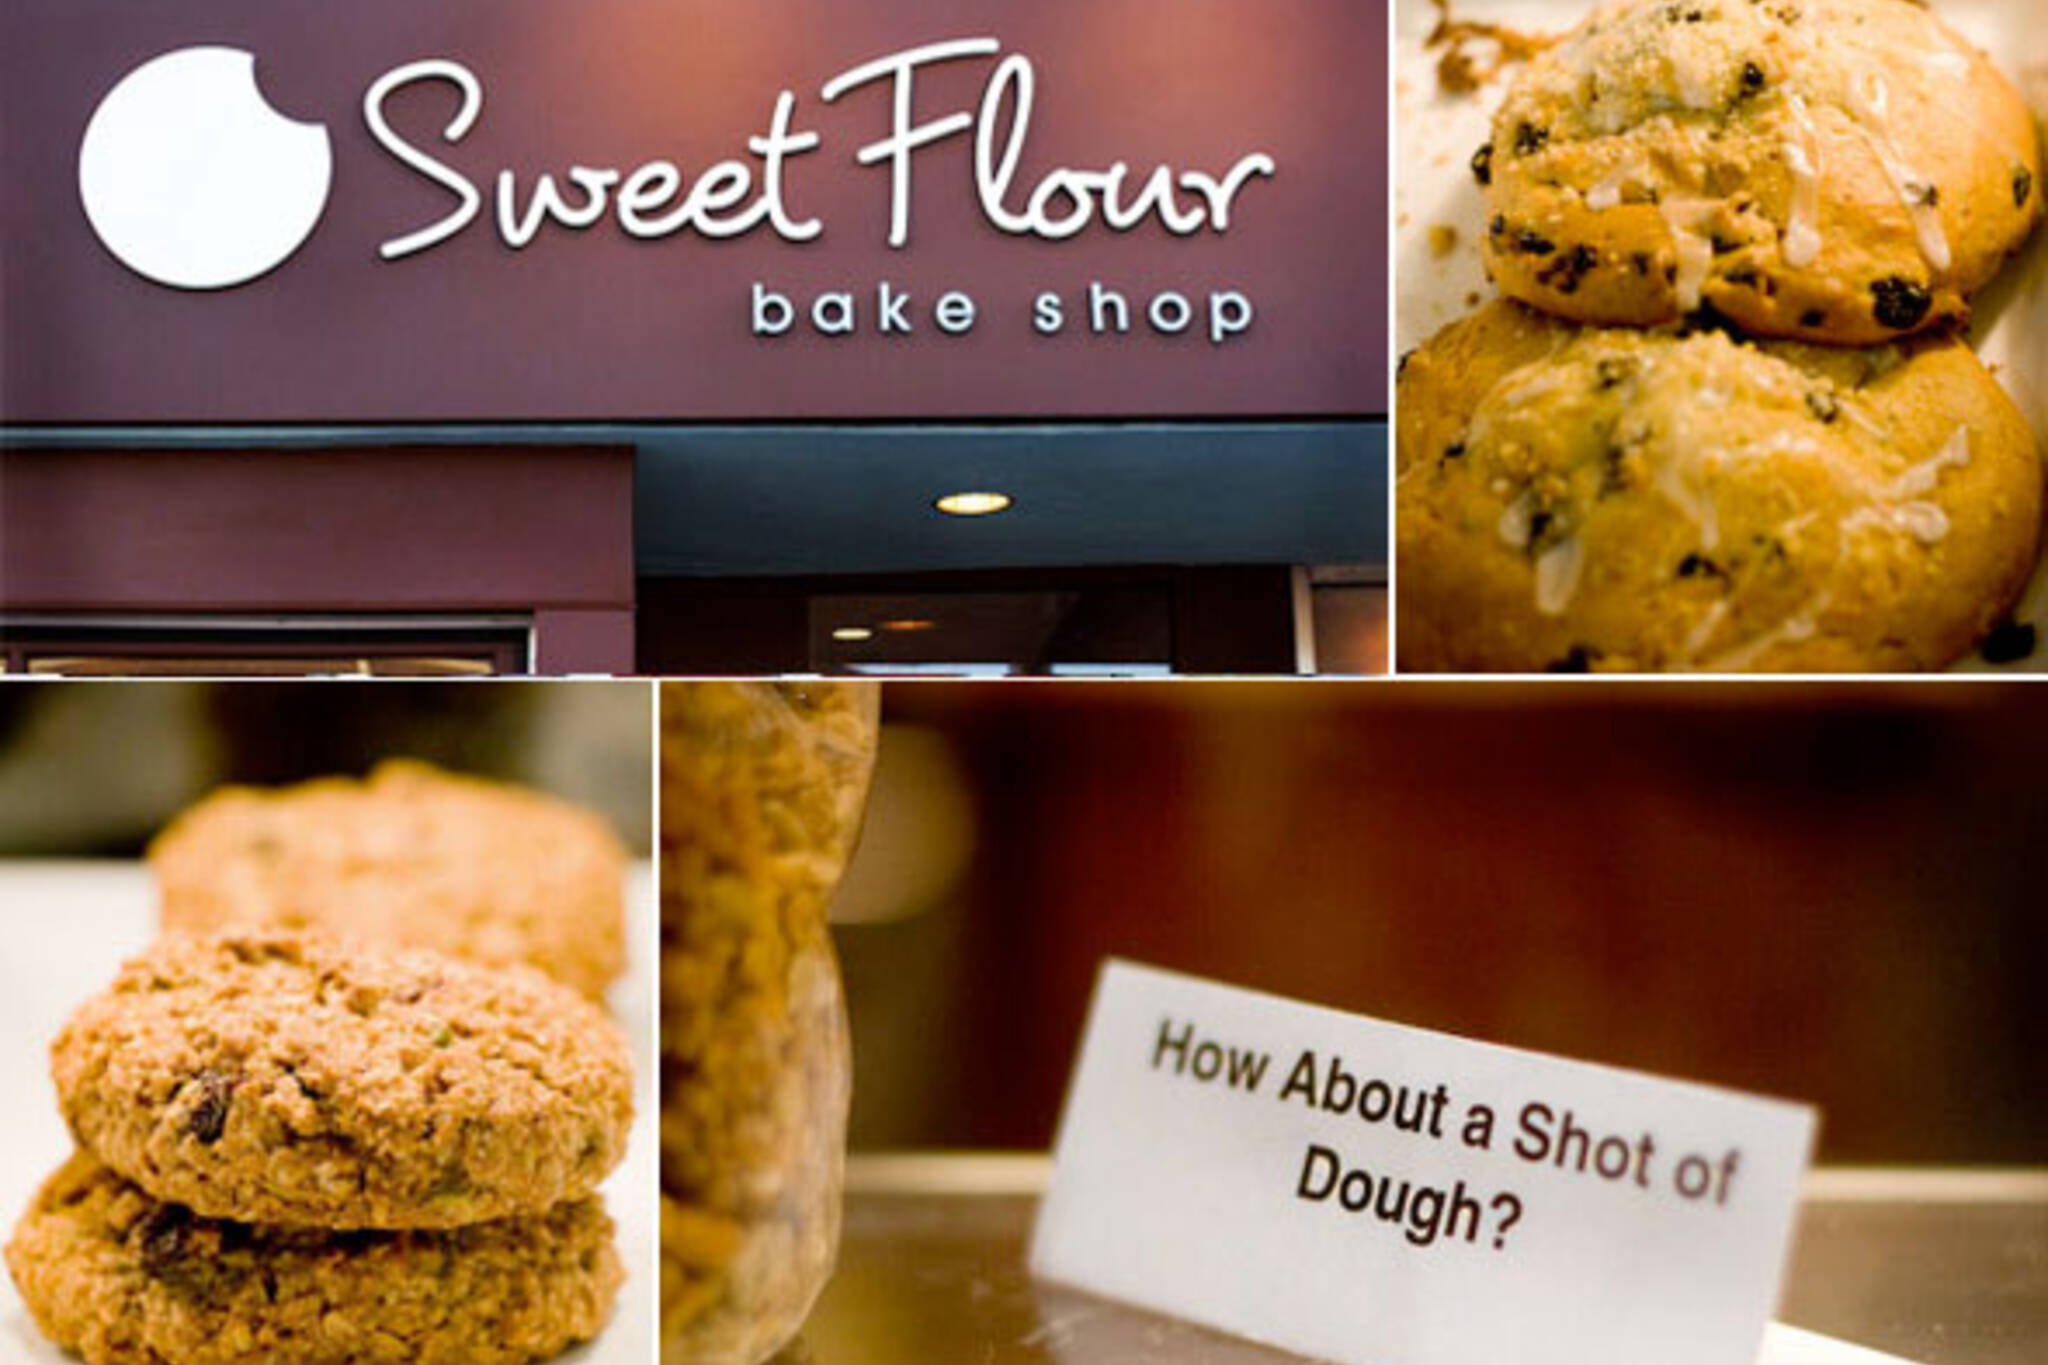 sweet flour bake shop toronto bloor west village